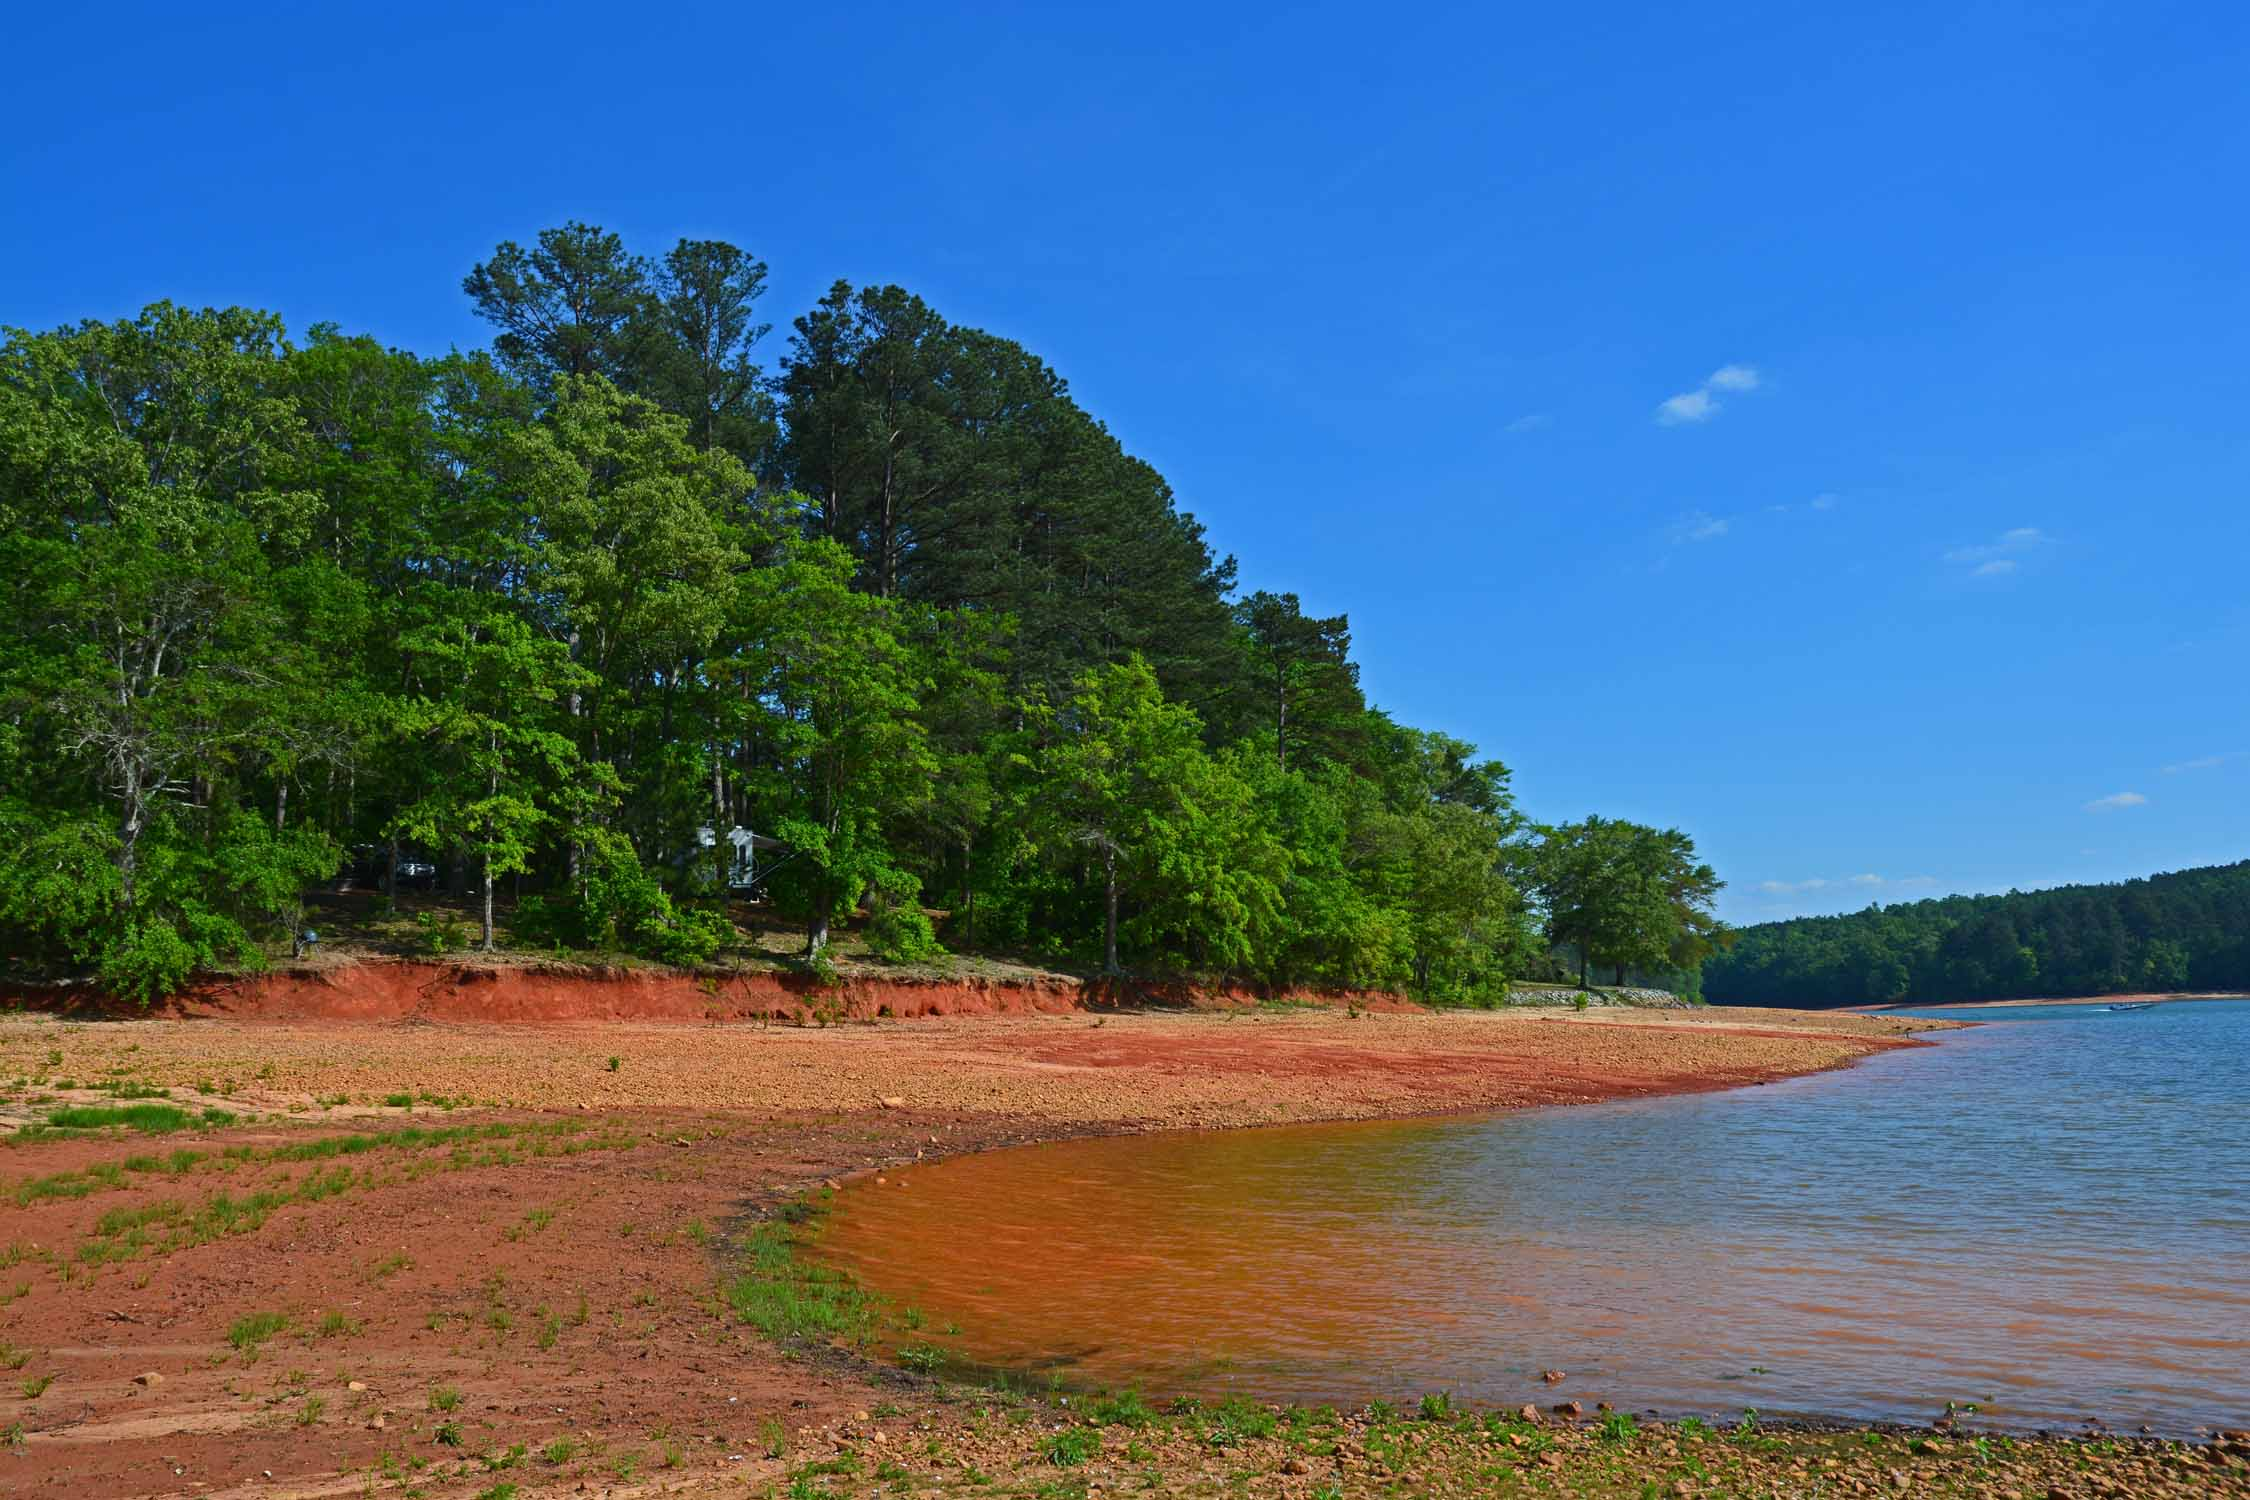 Lake Hartwell in South Carolina always calls us back...